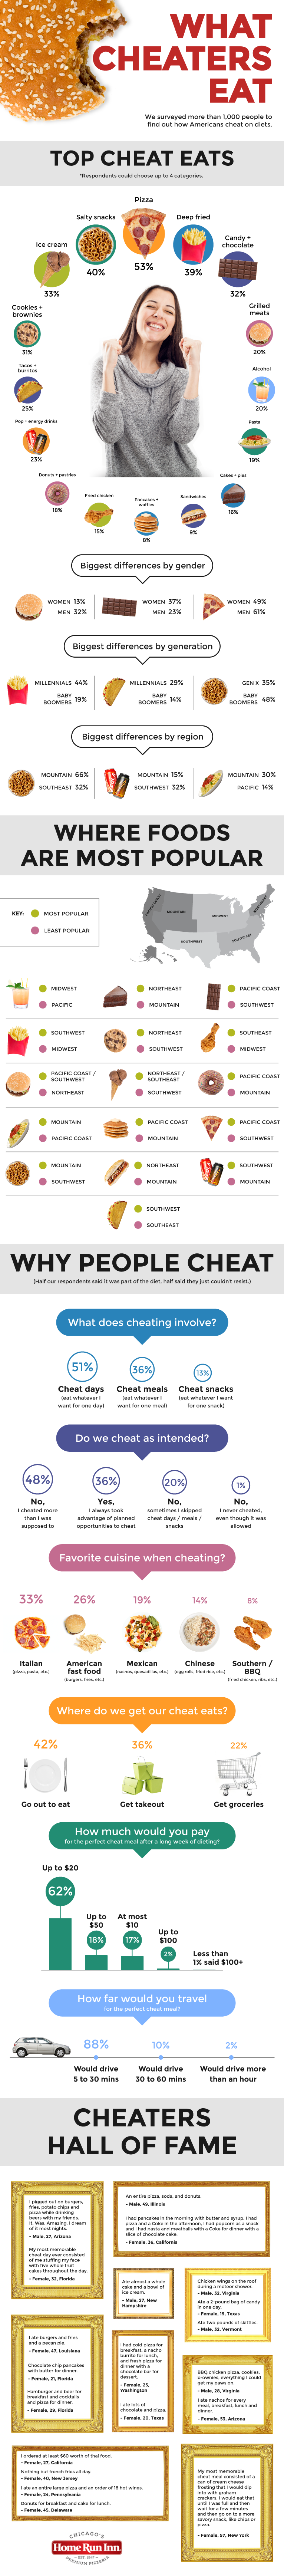 What Cheaters Eat #Infographic